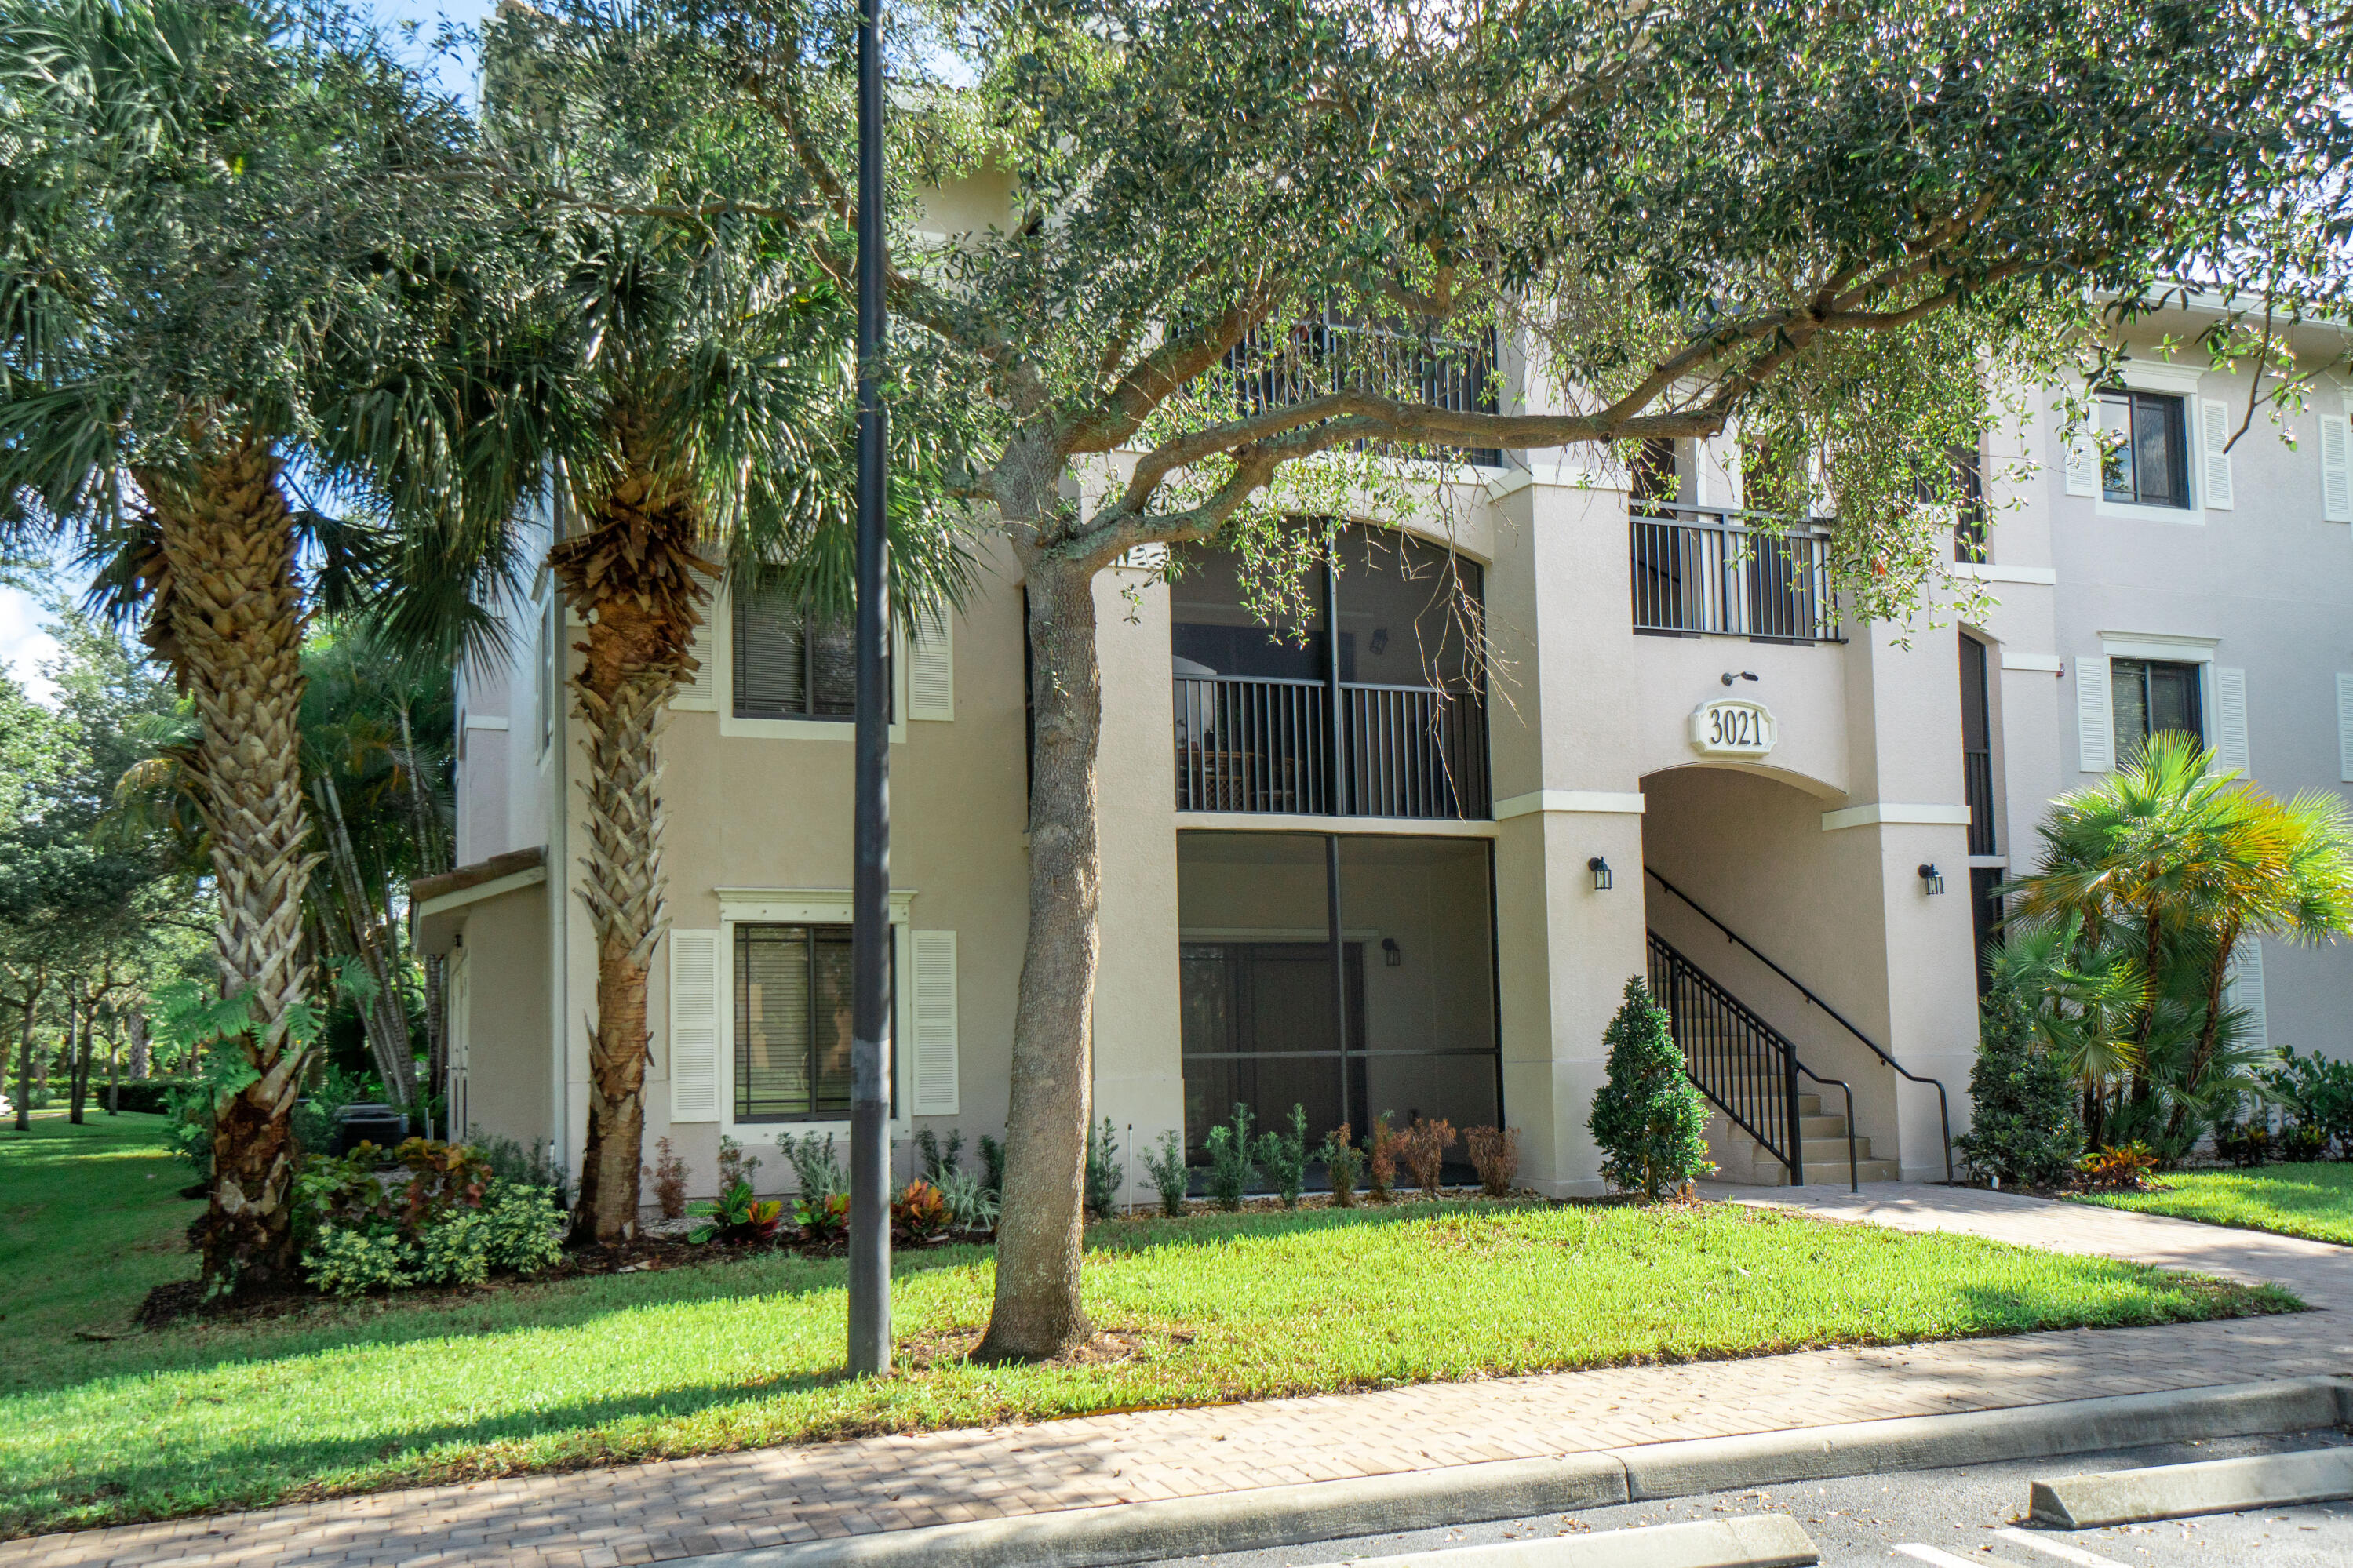 Fantastic 1st floor condo located in San Matera community in the heart of Palm Beach Gardens. Pets ok. Community offers a resort style pool, sauna, jacuzzi, fitness room, club room, indoor racquet ball court, outdoor tennis courts. Walking distance to Gardens Mall, downtown at the Gardens, restaurants, shopping, nightlife, easy access to I 95 and the beach.